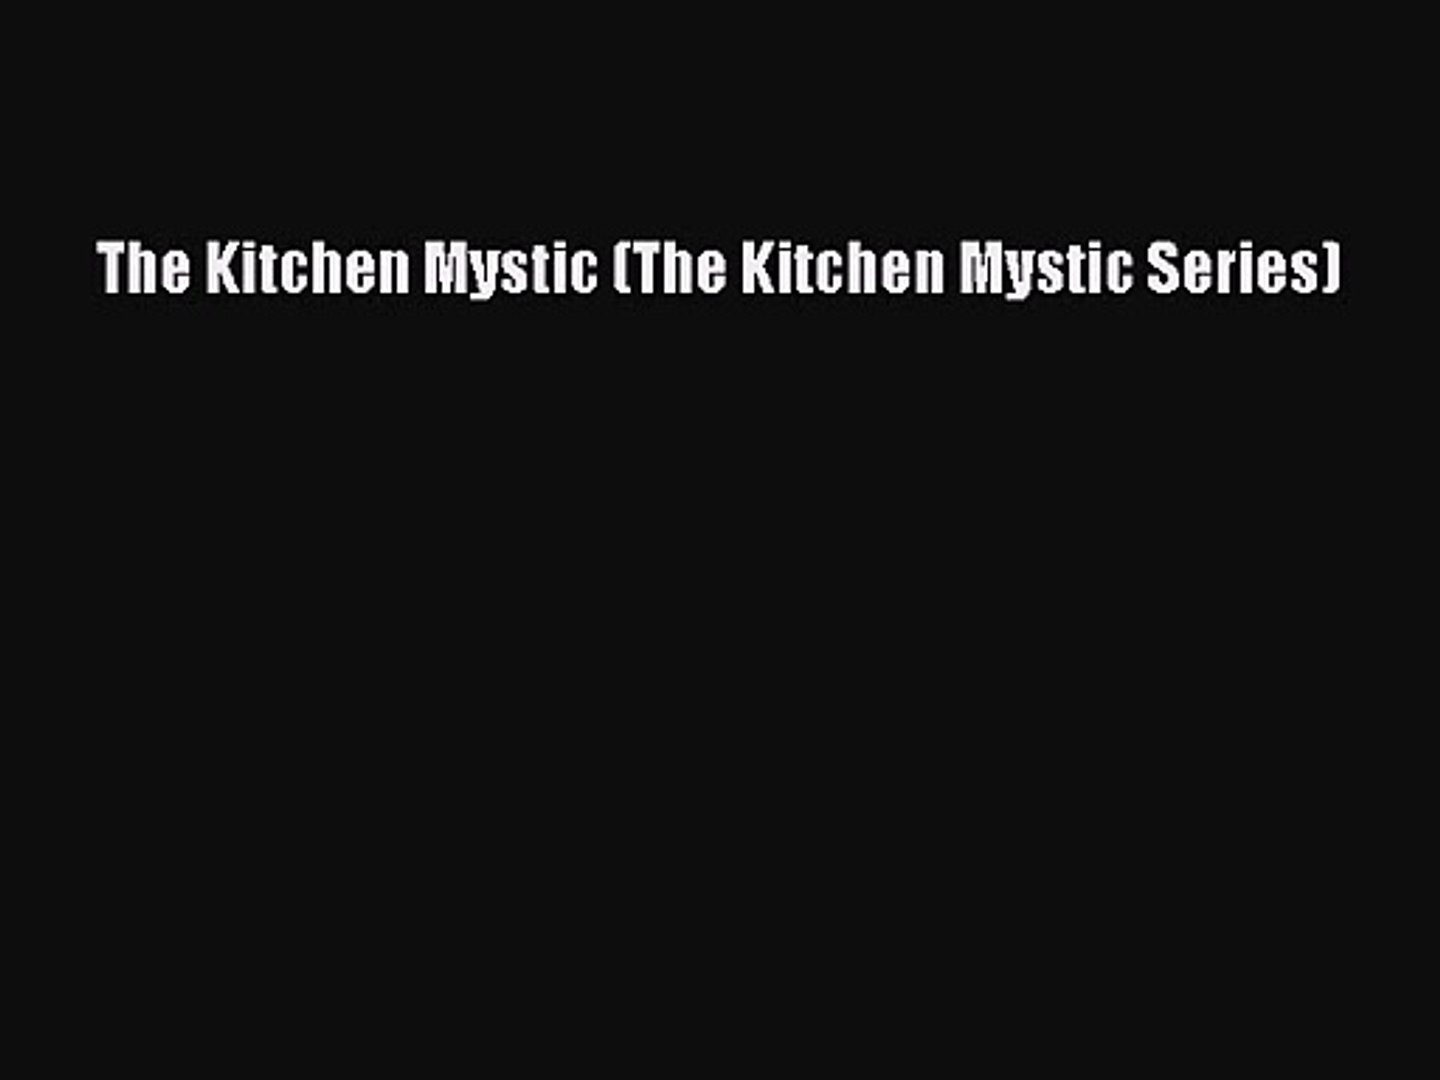 The Kitchen Mystic (The Kitchen Mystic Series) [Read] Full Ebook